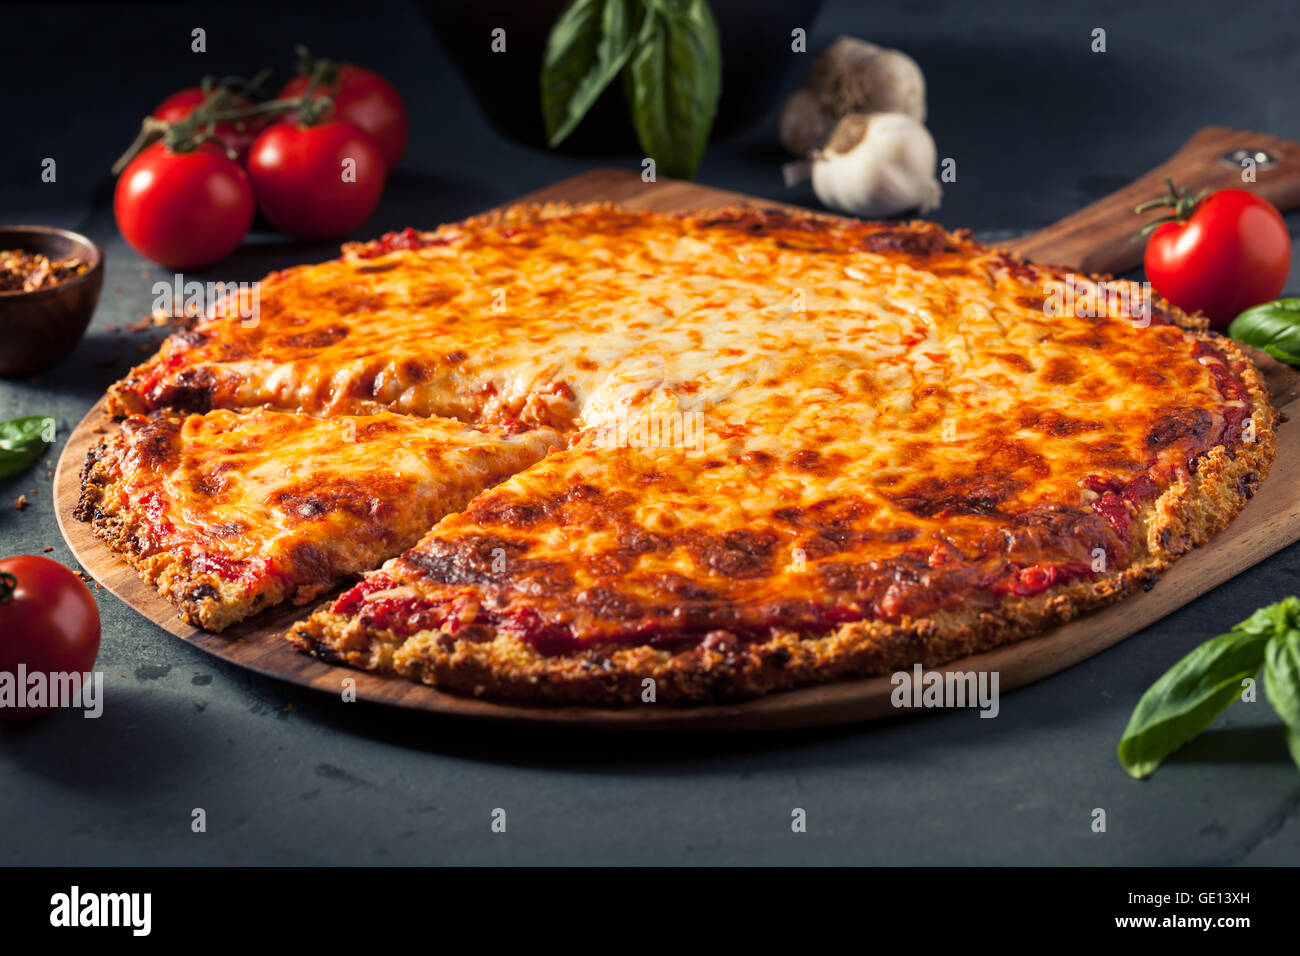 Healthy Homemade Quinoa Crust Cheese Pizza with Basil - Stock Image